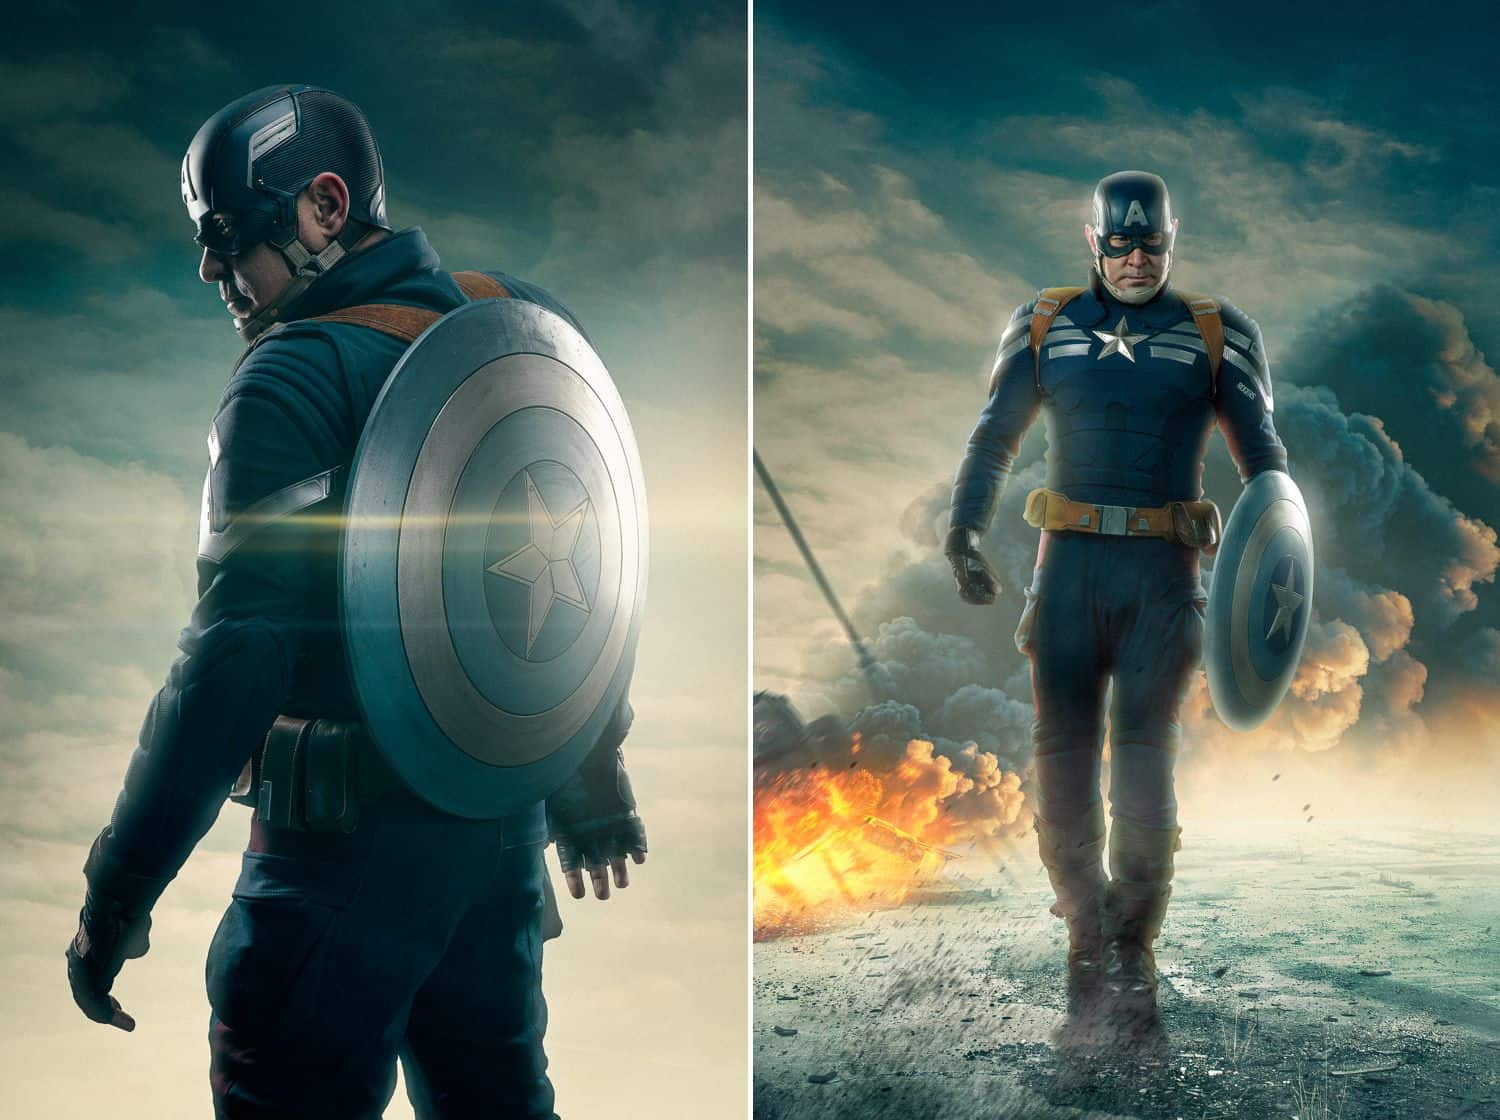 Freedom to create: Captain America cosplay with digital art by Ryan Sims